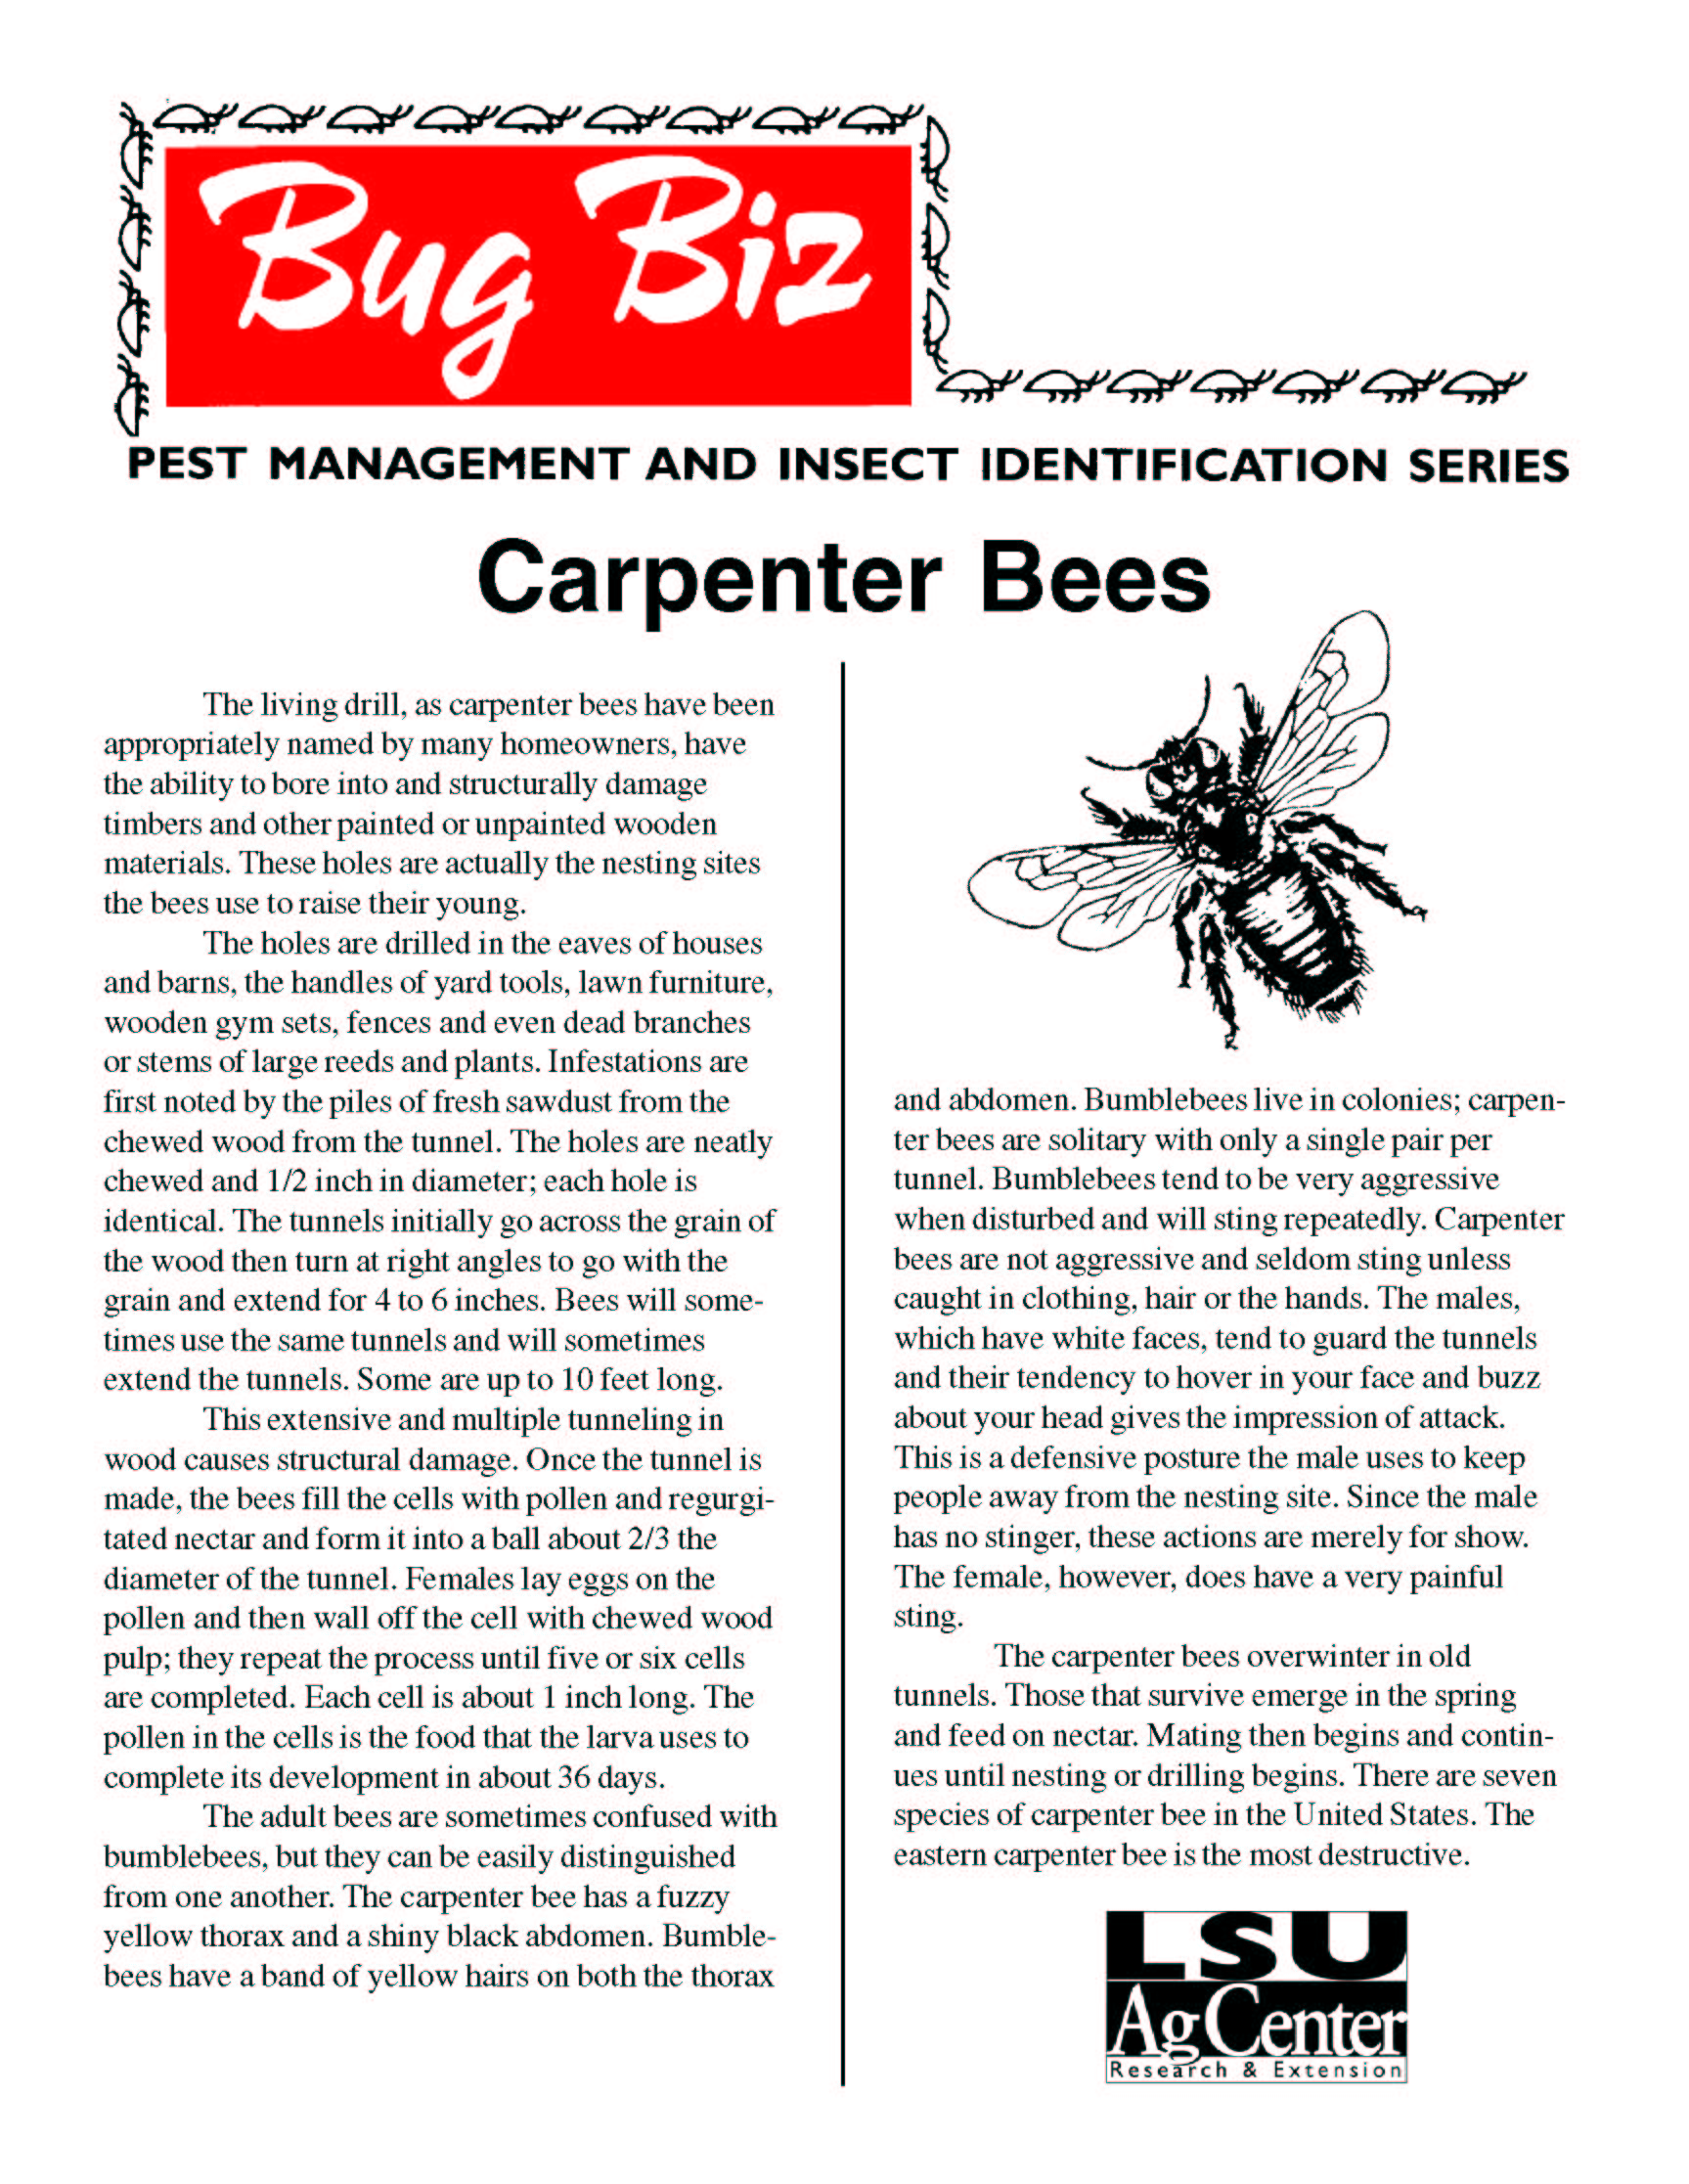 Bug Biz: Carpenter Bees